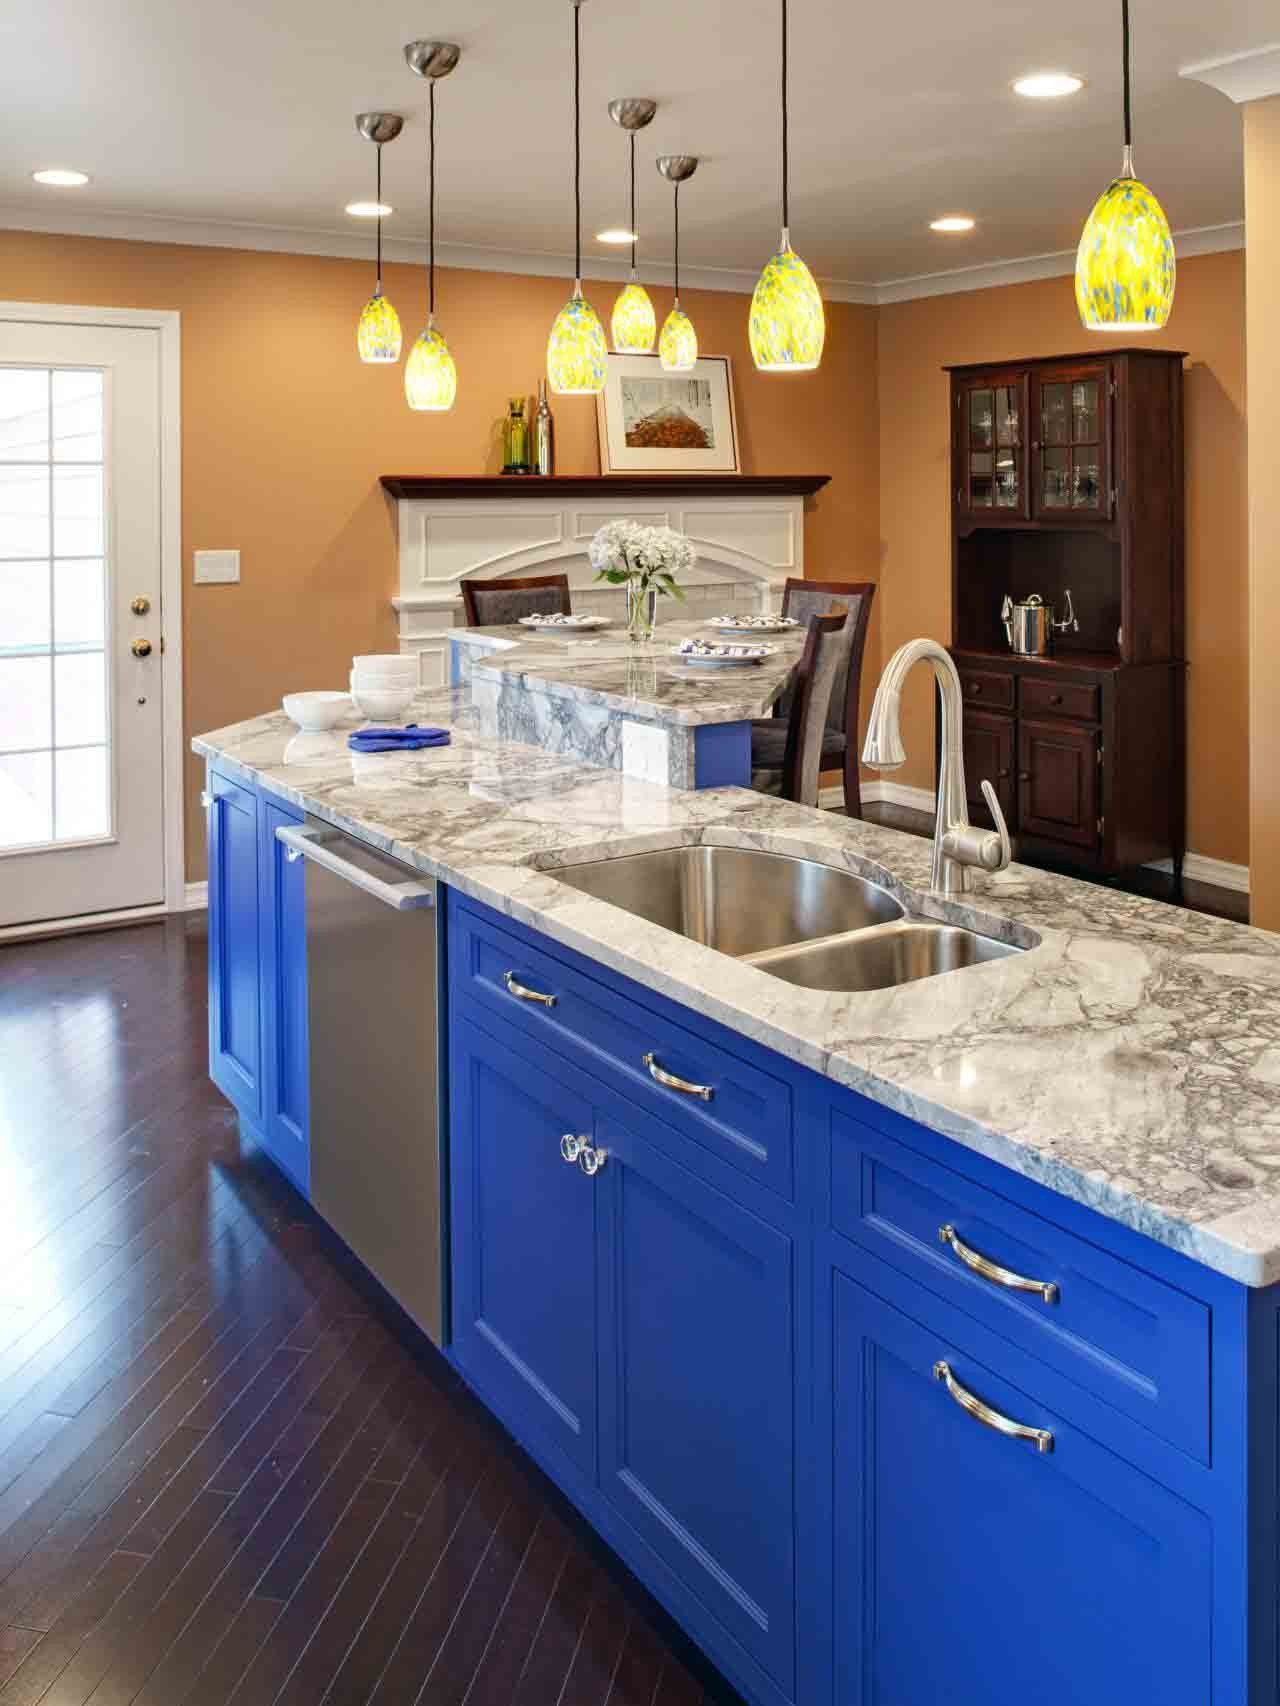 Royal Blue Kitchen Decor Inspiring Blue Kitchen Ideas To Renovate Your Kitchen In 2020 Kitchen Cabinet Color Options Kitchen Cabinet Remodel Kitchen Design